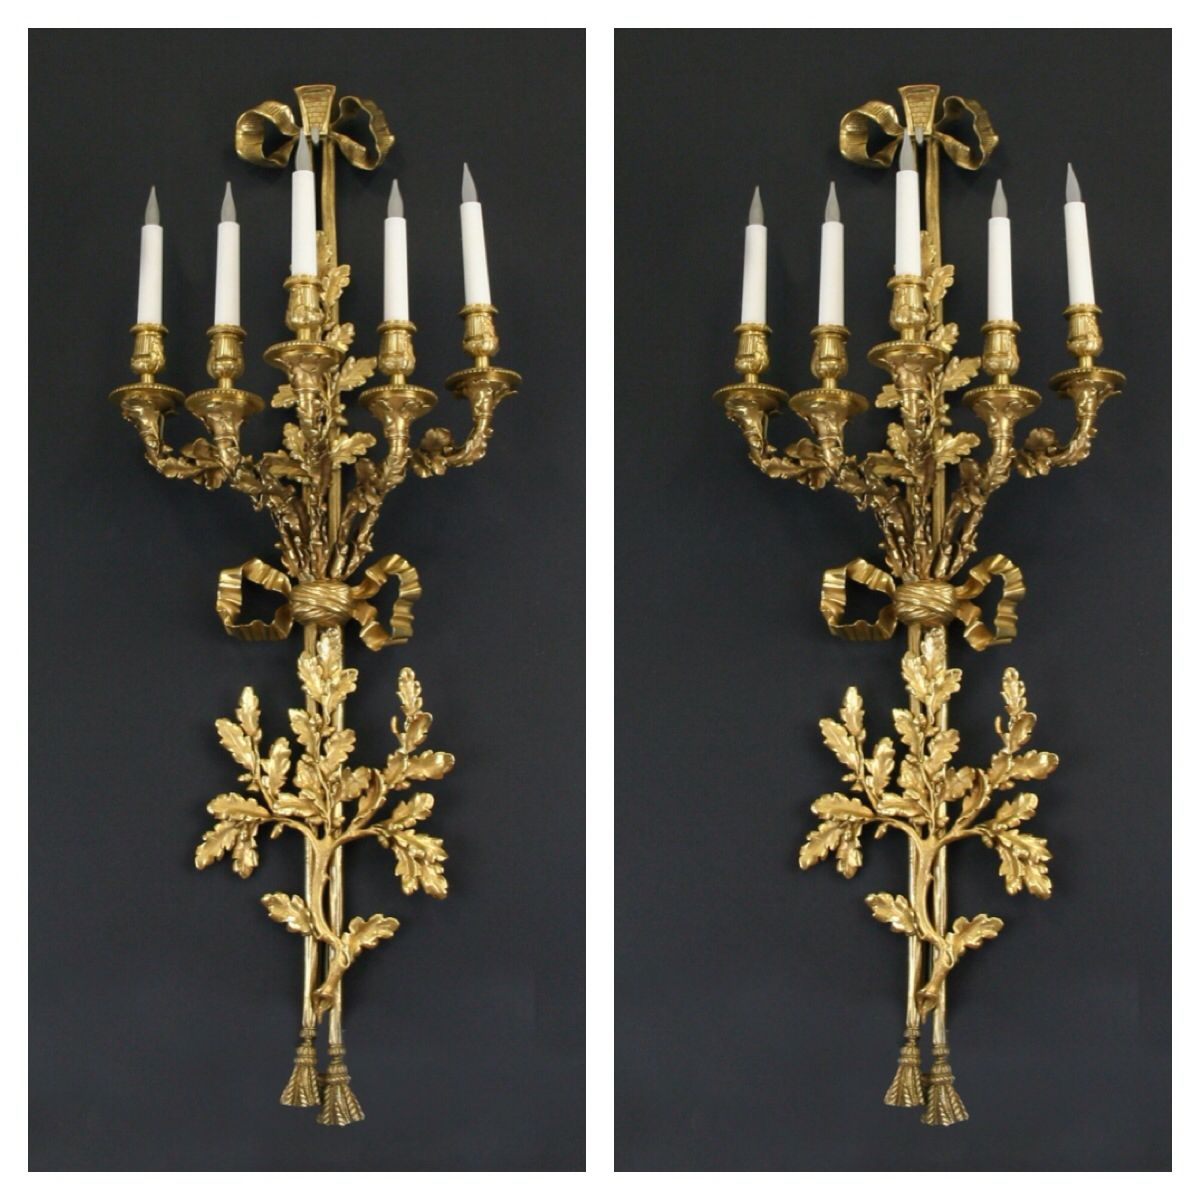 Interior Wall Sconces With Switch Wall Sconces Interior Wall Sconces Wall Sconces Bedroom